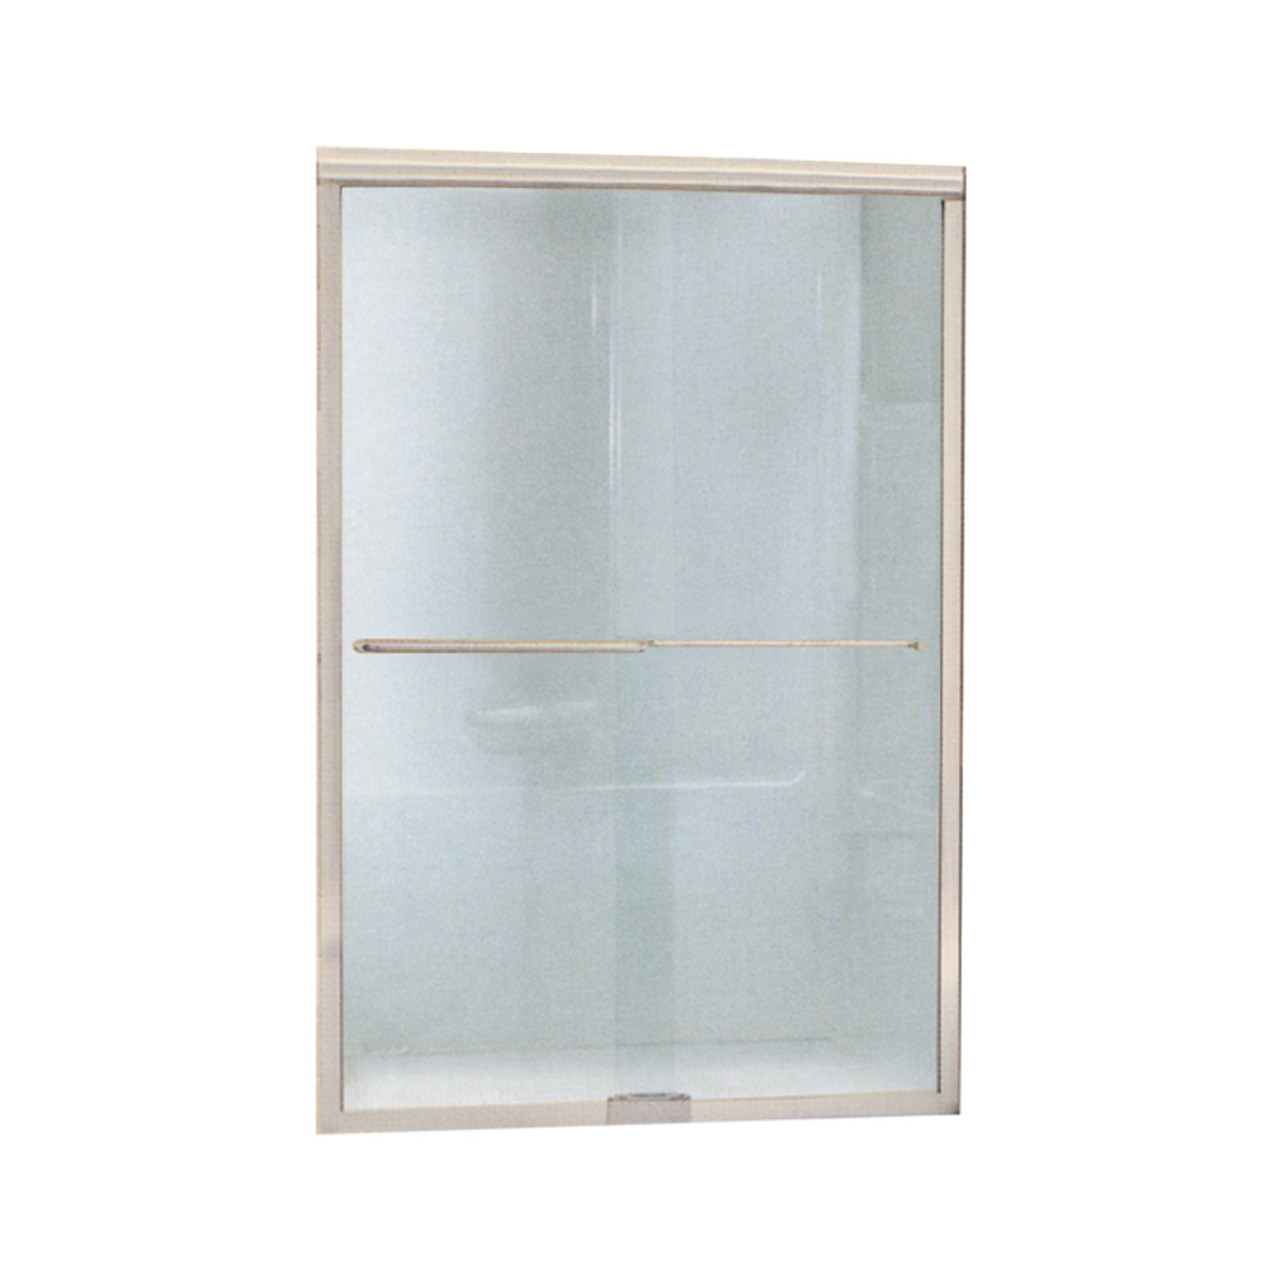 Sterling Finesse 44 To 45 5 In X 65 5 In Frameless Sliding Alcove Shower Door With Clear Glass In Nickel With Clear Glass 5365ez 45n Online Bath1 Com